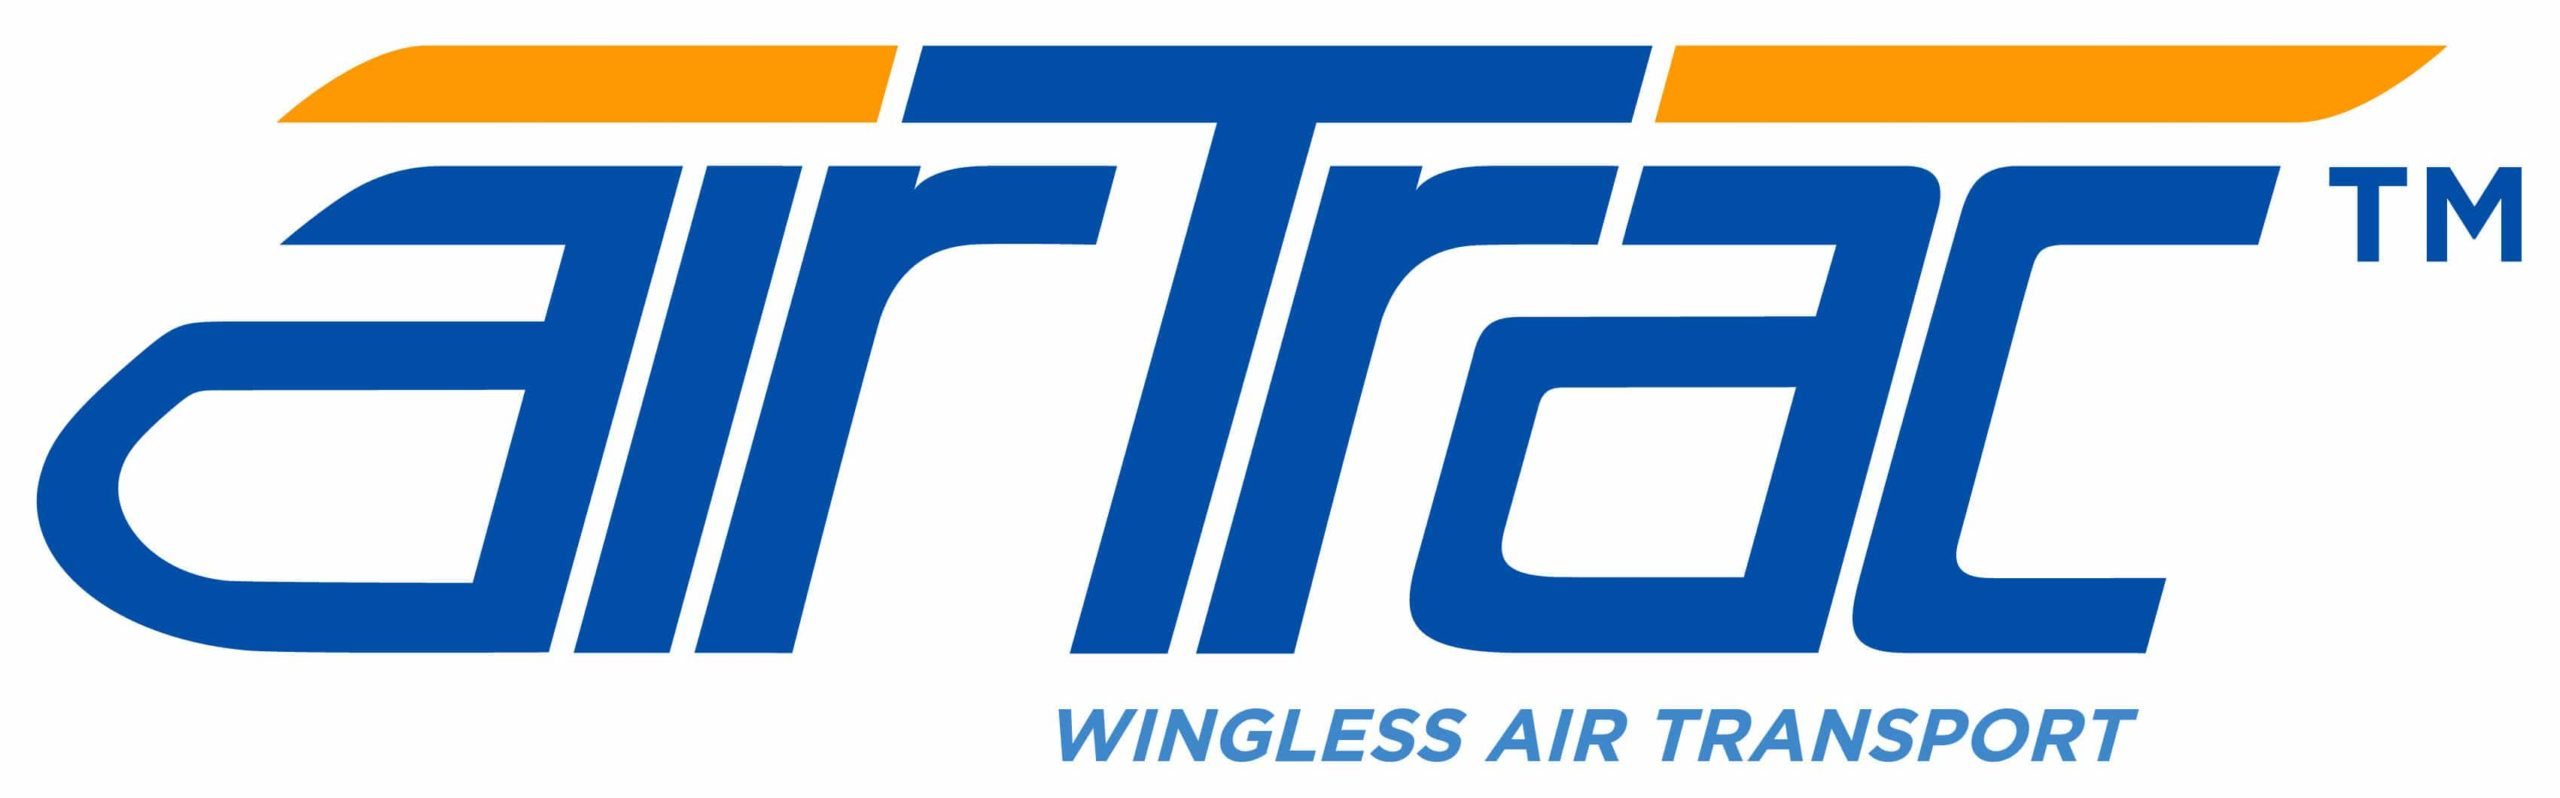 AirTrac Transport LLC